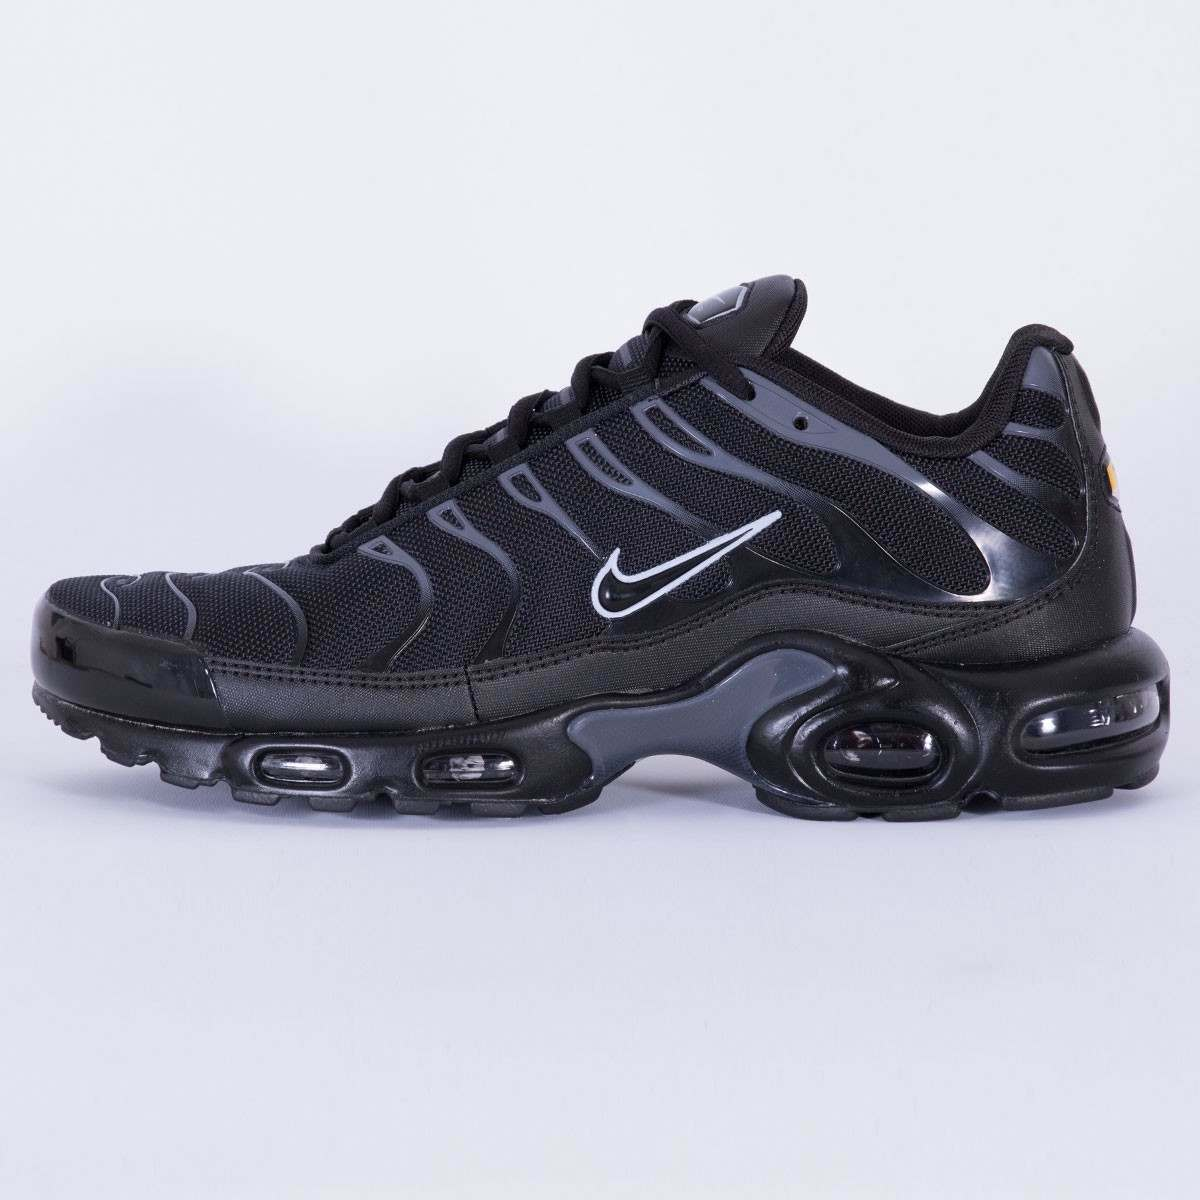 Mens Nike Air Max Plus Sneakers New, Black   Pure Platinum Silver 852630-011